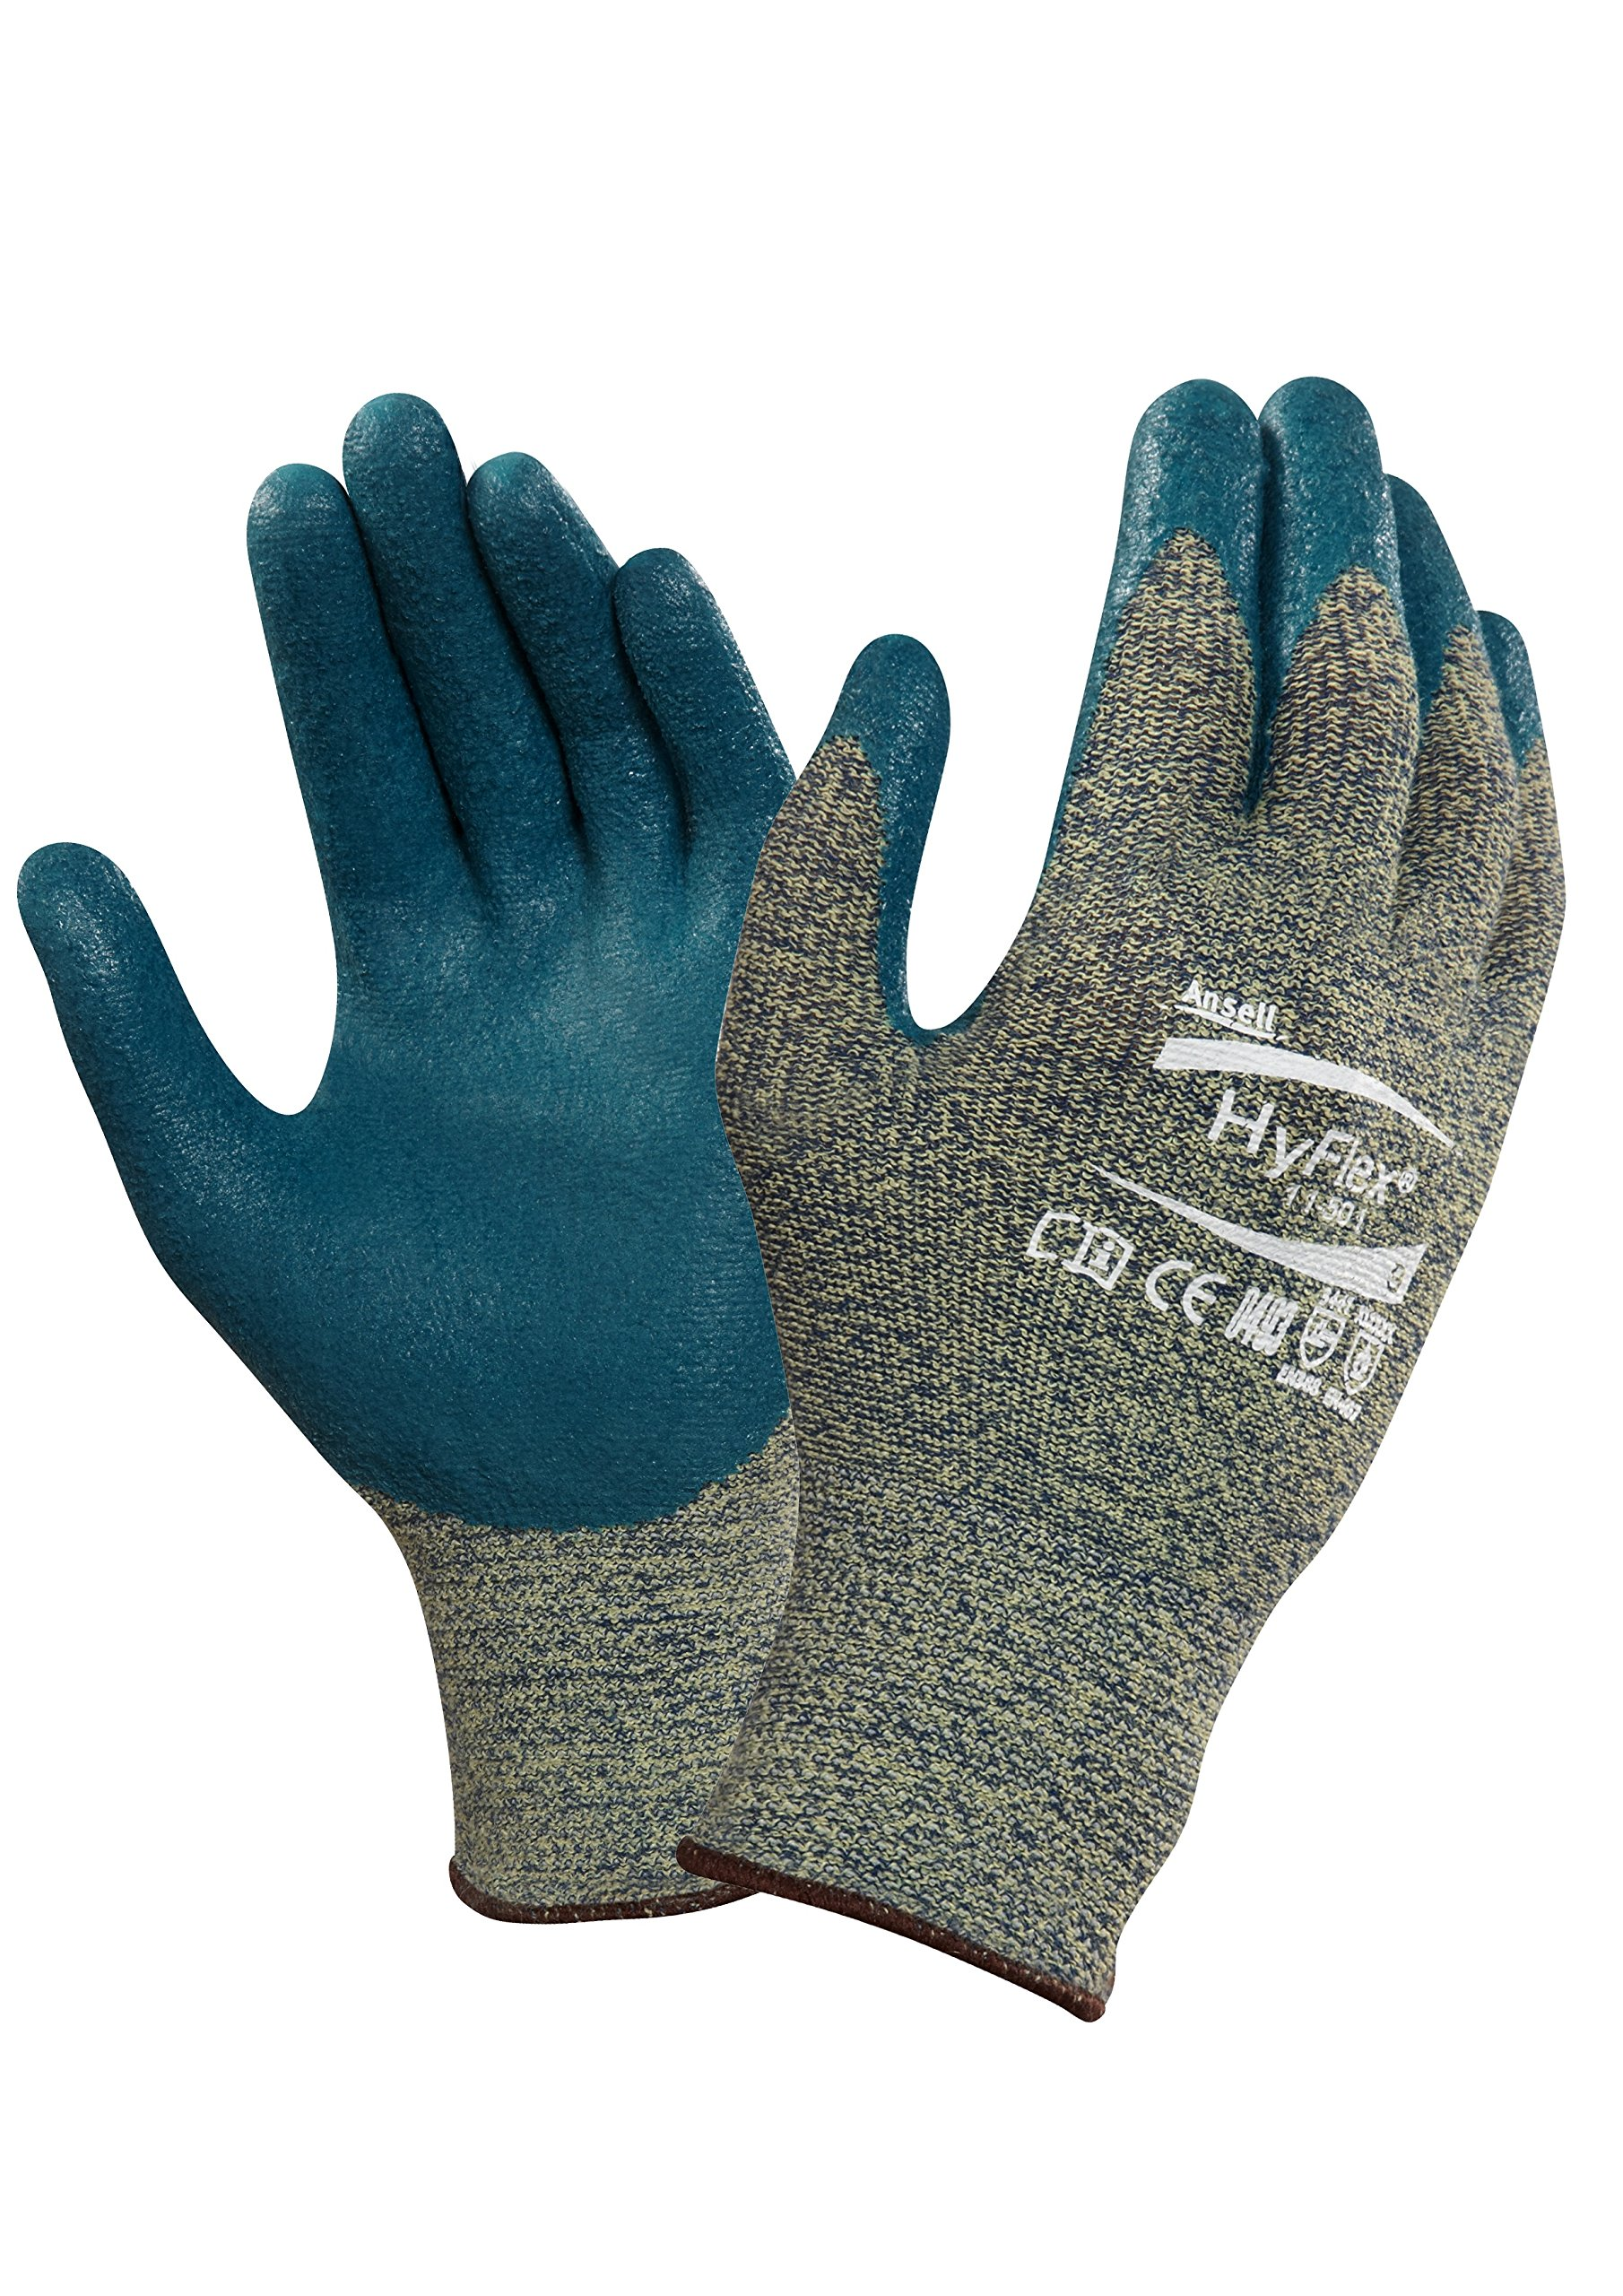 Ansell HyFlex 11-501 Kevlar Glove, Cut Resistant, Blue Foam Nitrile Coating, Knit Wrist Cuff, Small, Size 7 (Pack of 12) by Ansell (Image #1)